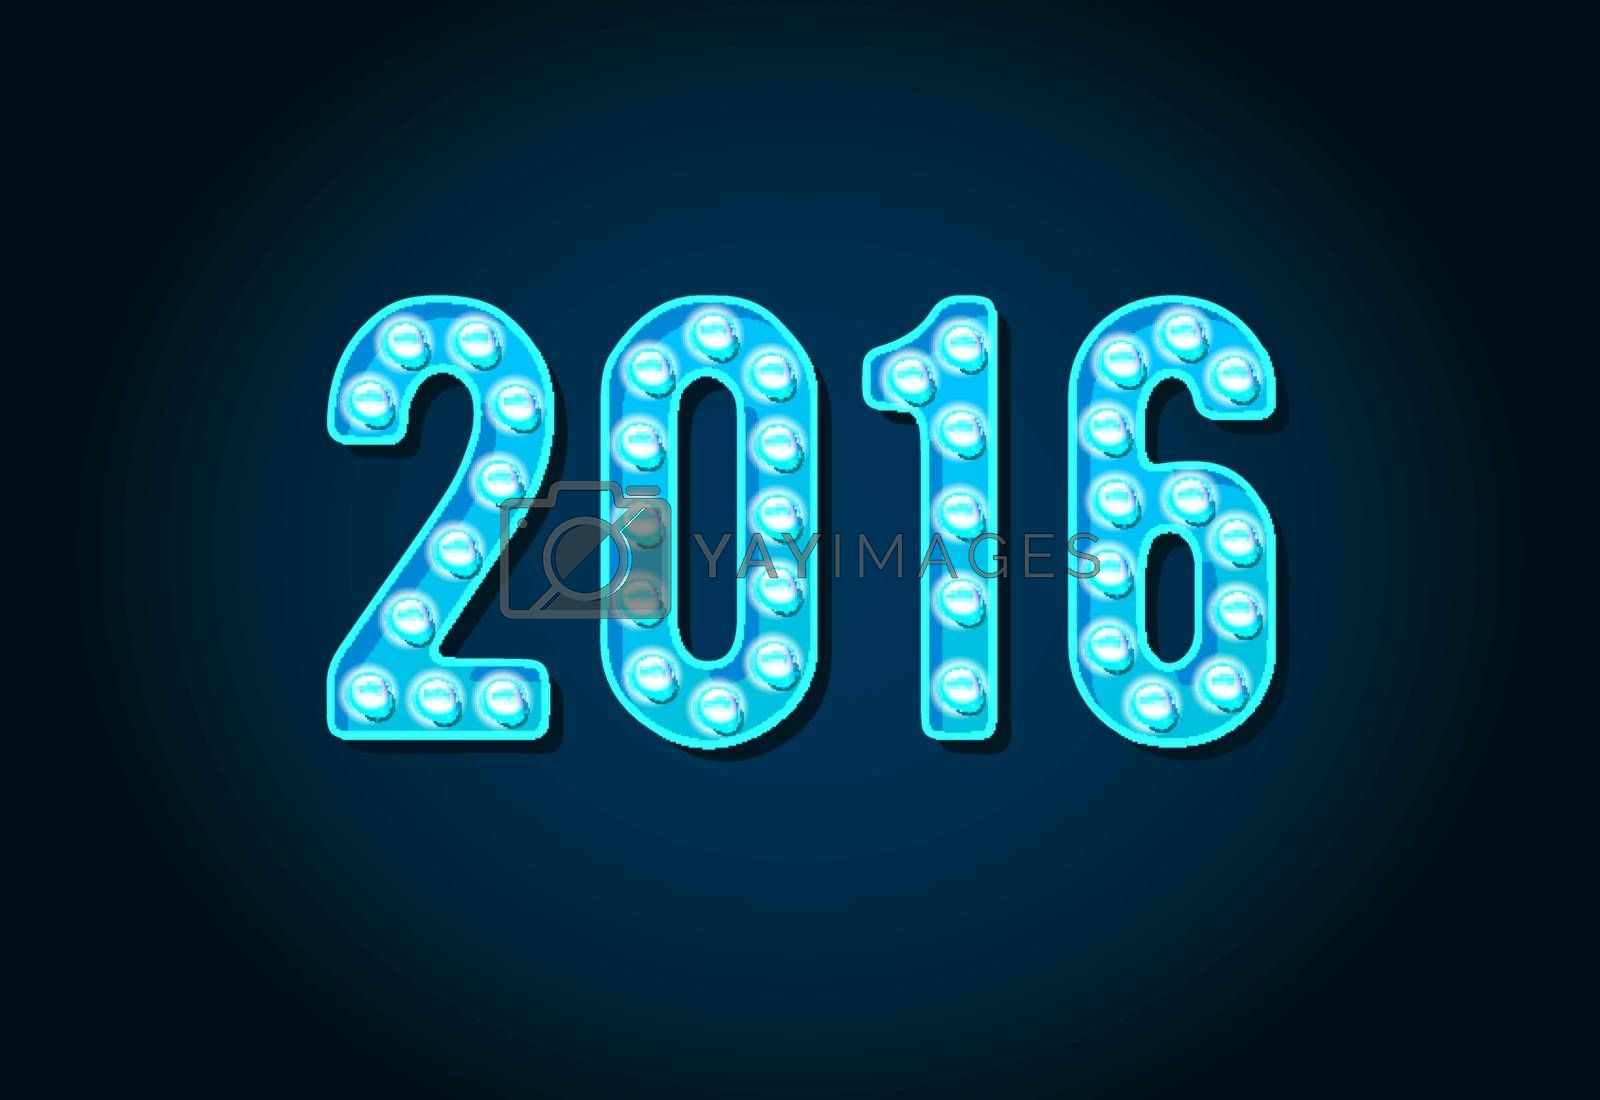 2016 Neon Casino or Broadway Signs style light bulb Digits or Numbers in Vector